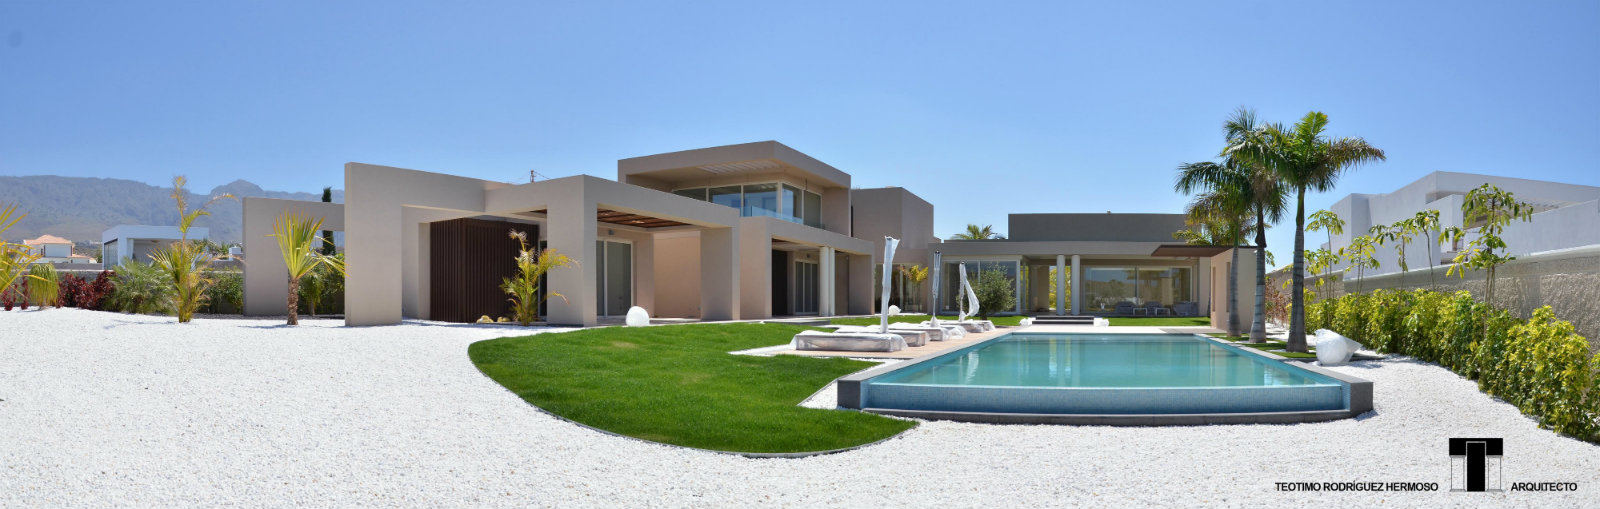 Ref 3017 Stunning luxury villas in La Caleta Adeje golf